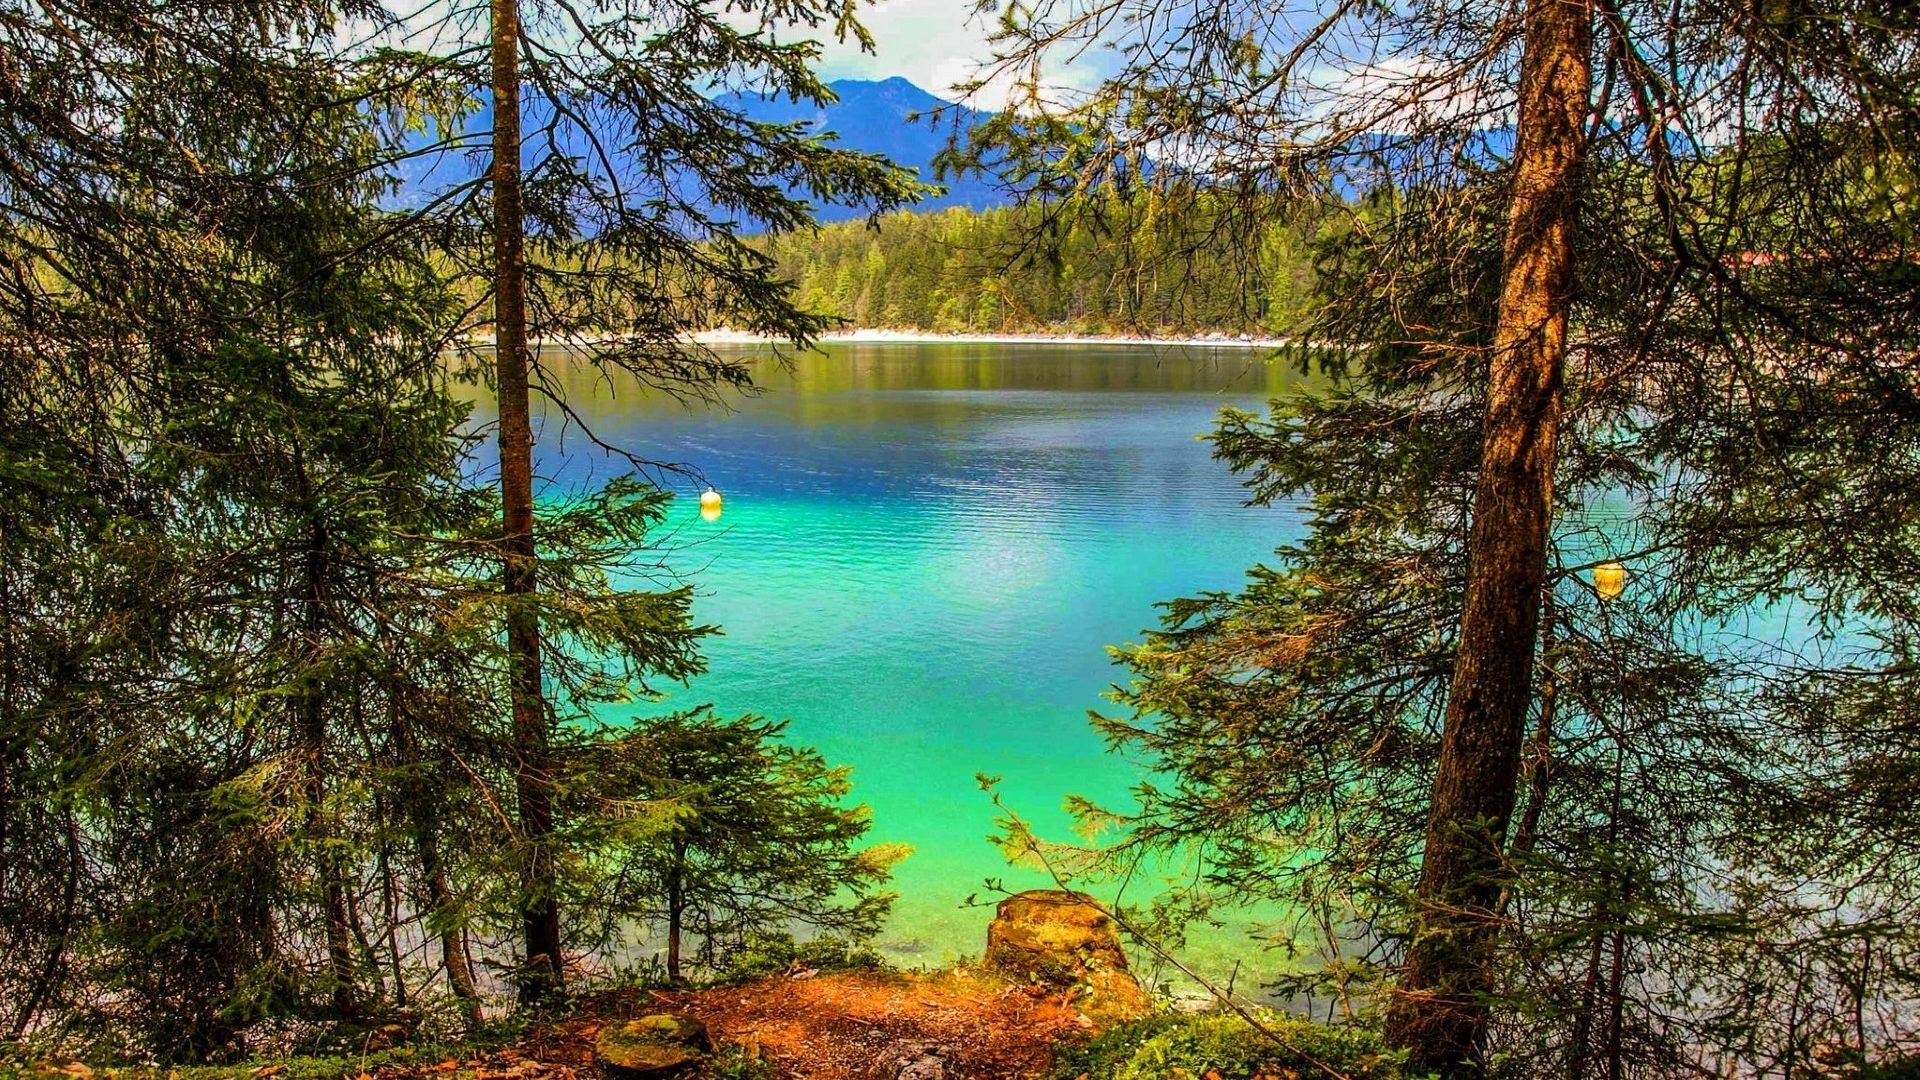 Eibsee Germany Lake Water Mountains Beautiful Turquoise Forest Summer Trees Grass Scenery Pictures Water Summer Grass Nature Desktop Wallpaper